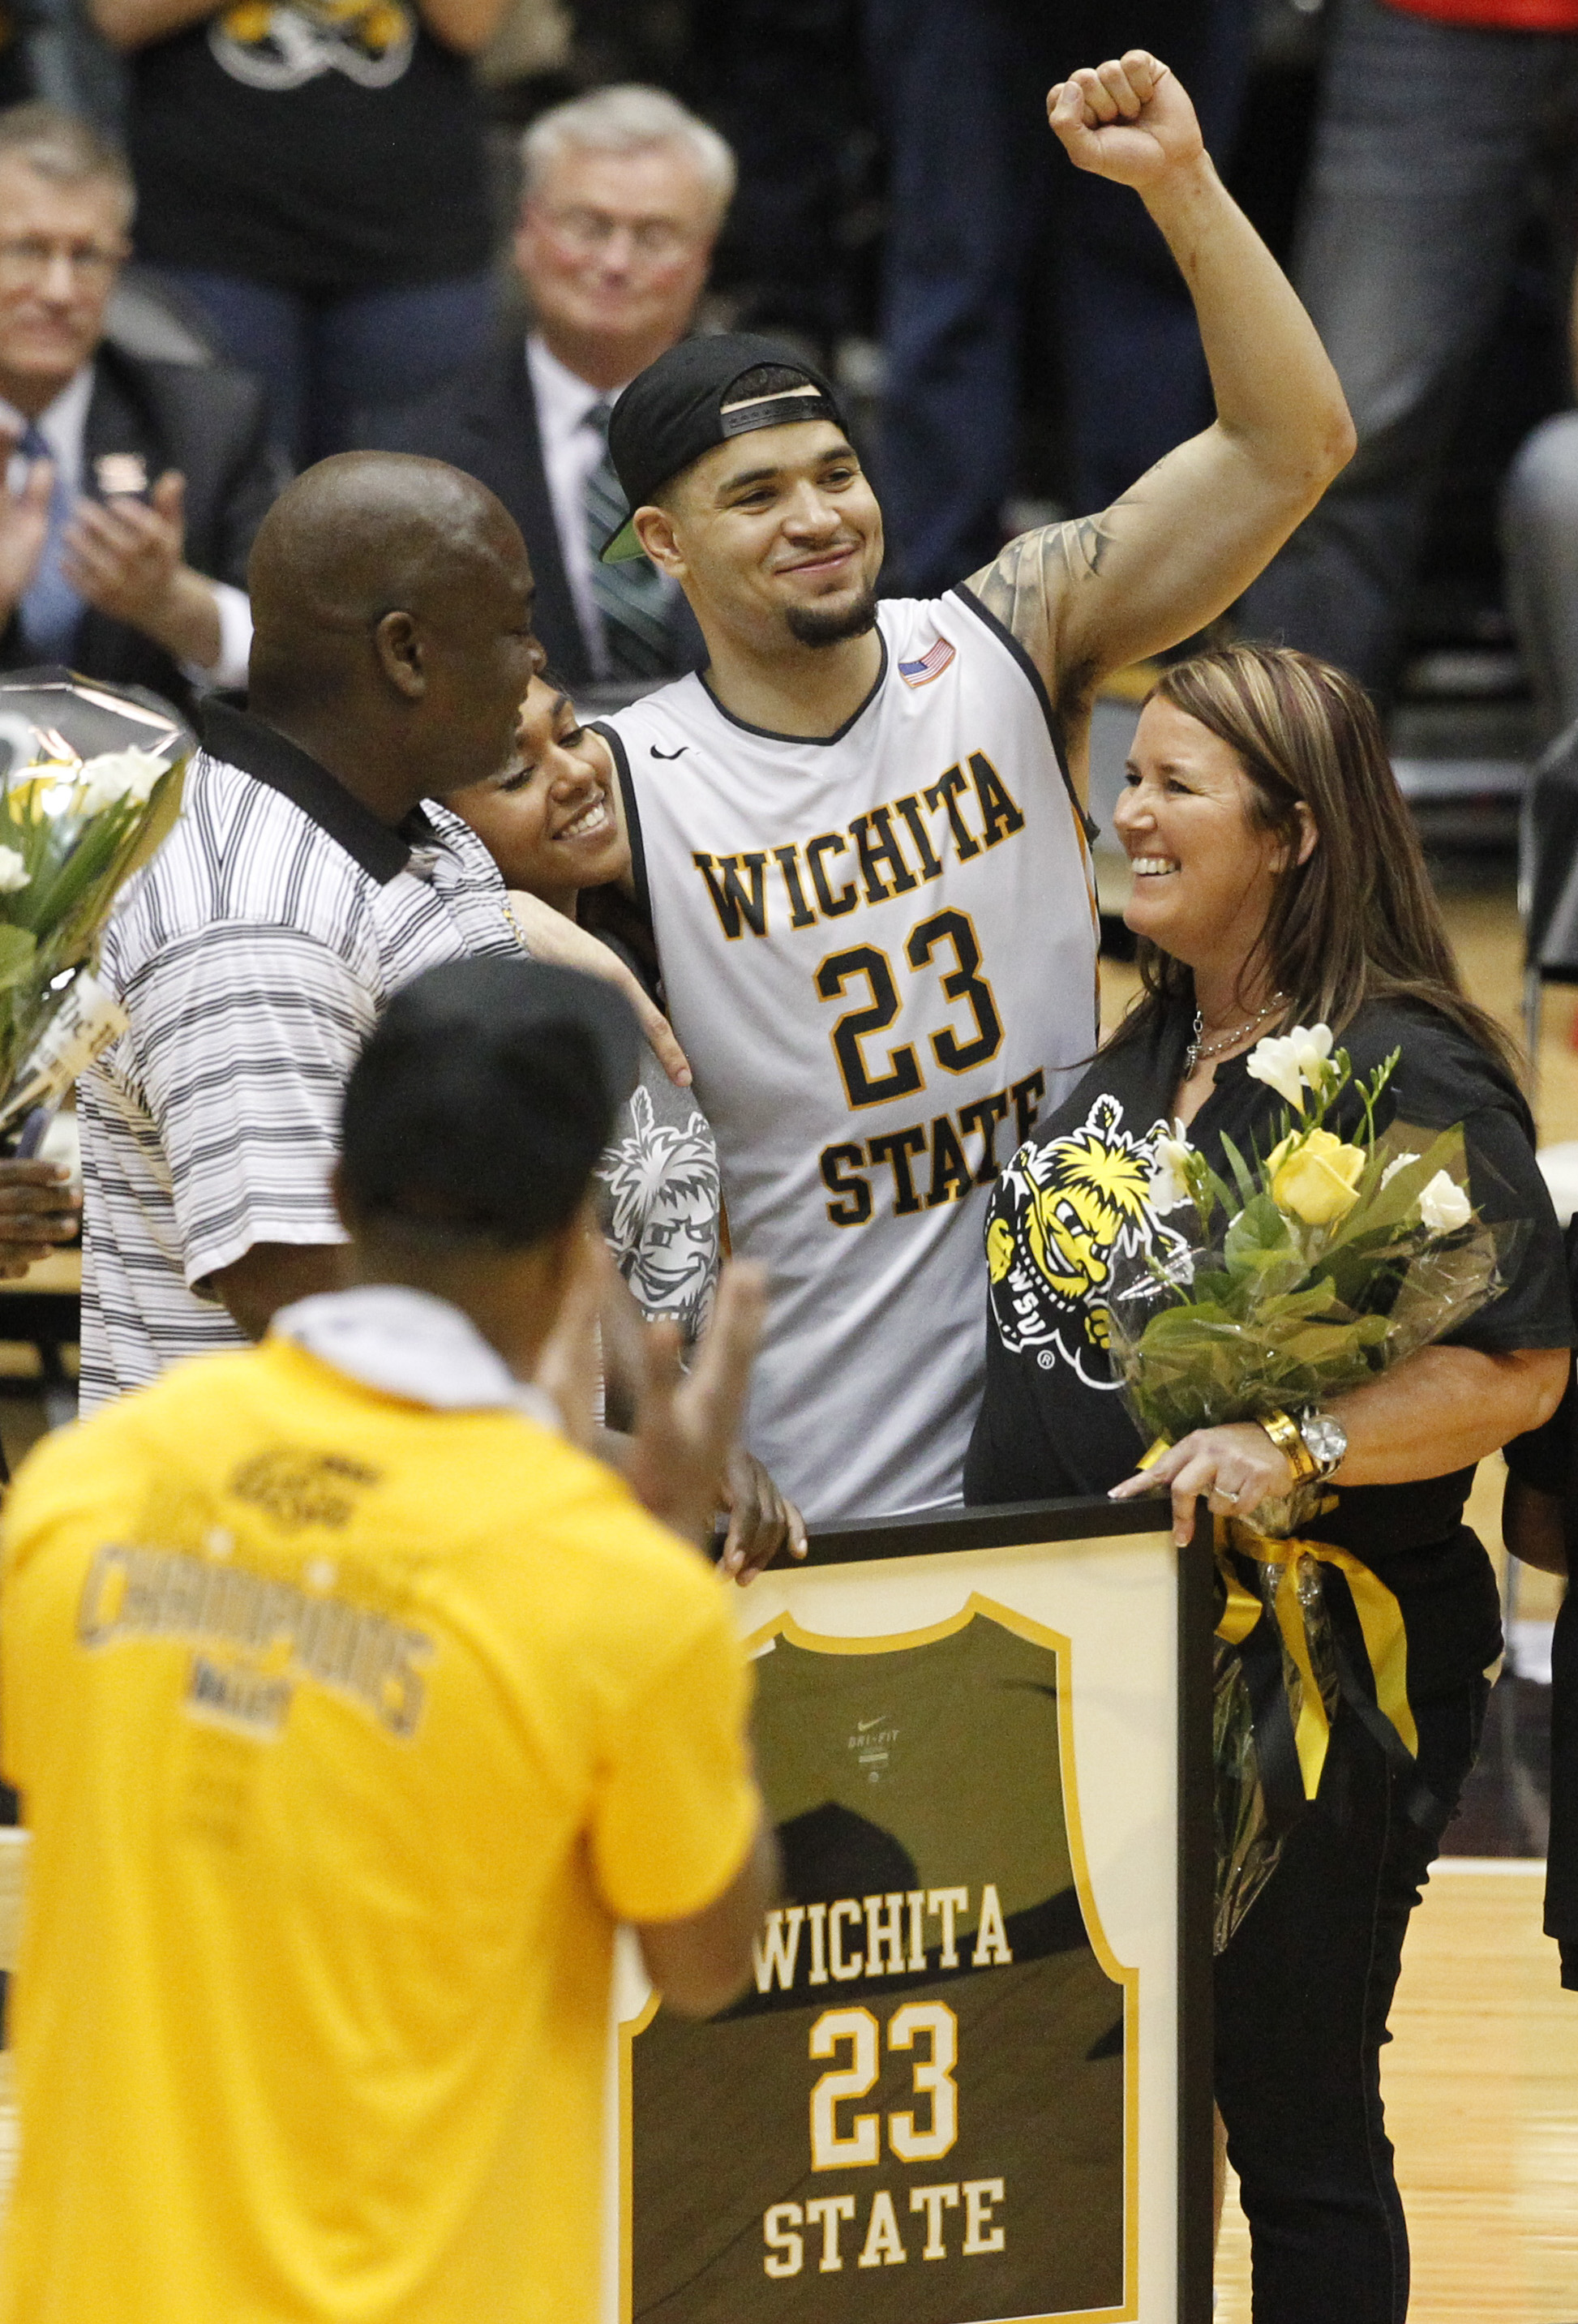 Wichita State senior Fred VanVleet is honored after Wichita State defeated Illinois State in an NCAA college basketball game Saturday, Feb. 27, 2016, in Wichita, Kan. (Travis Heying/The Wichita Eagle via AP)